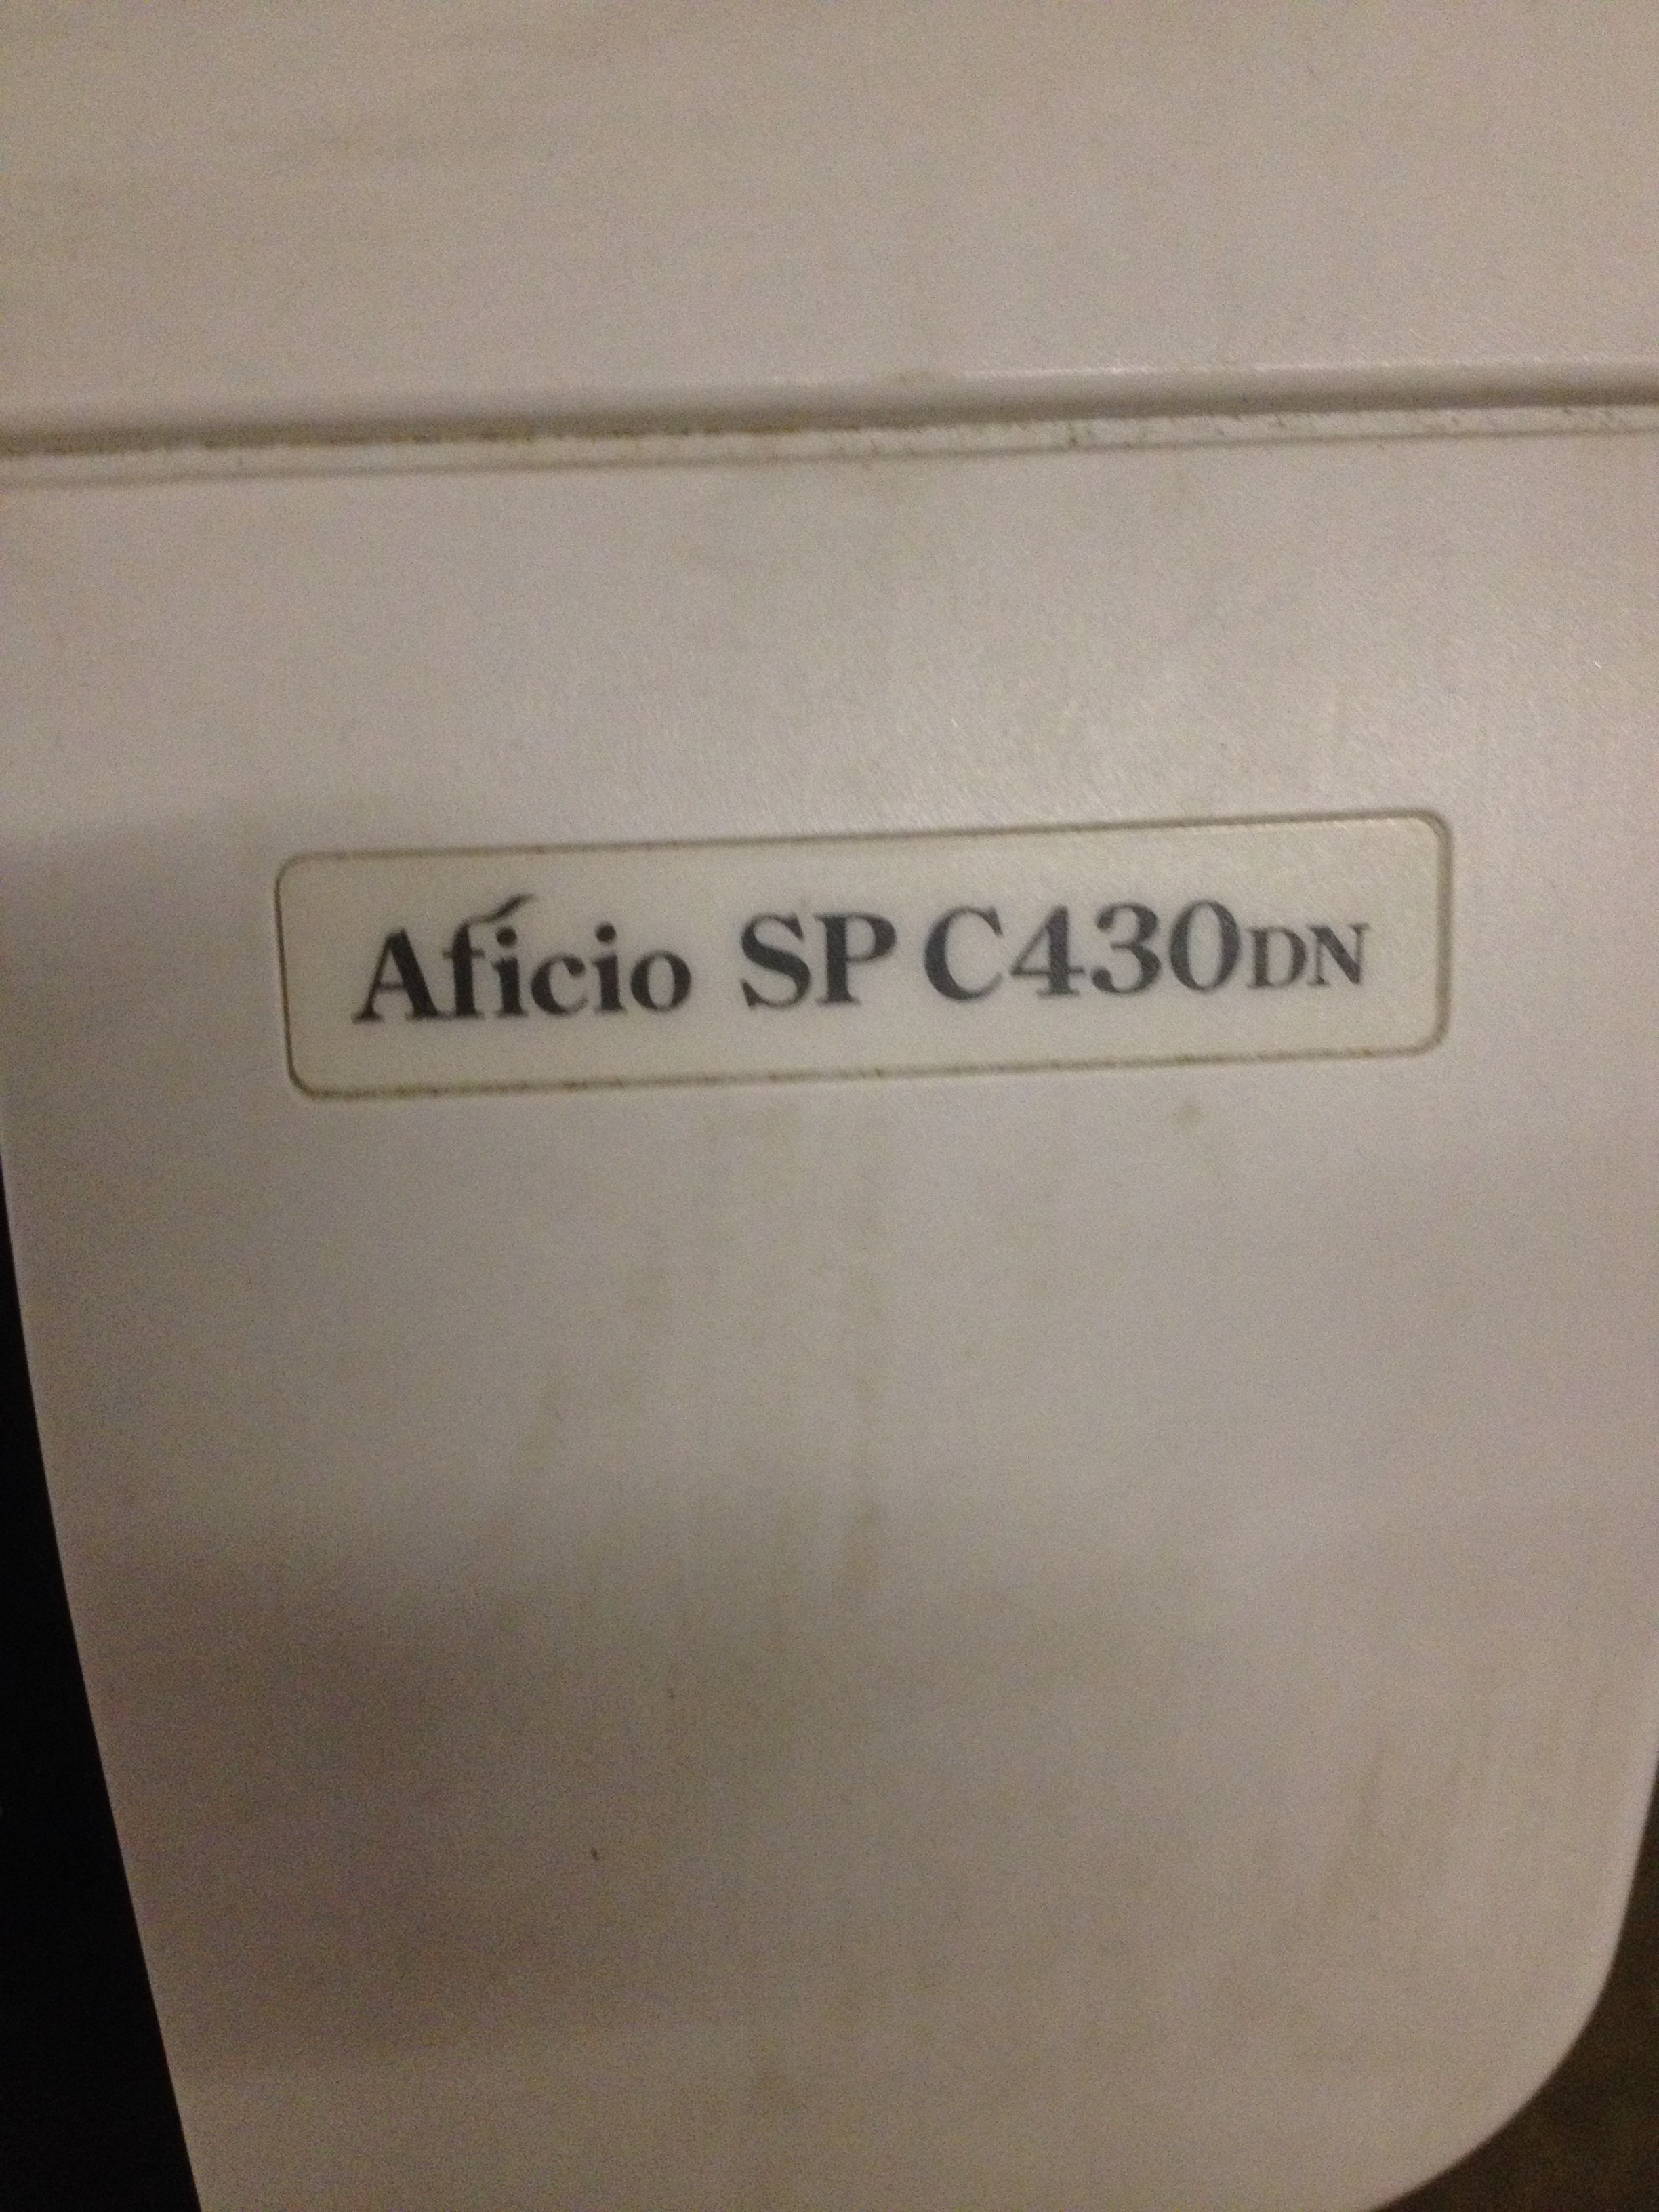 Ricoh Printer - Aficio SP C430DN (White) - Image 7 of 7